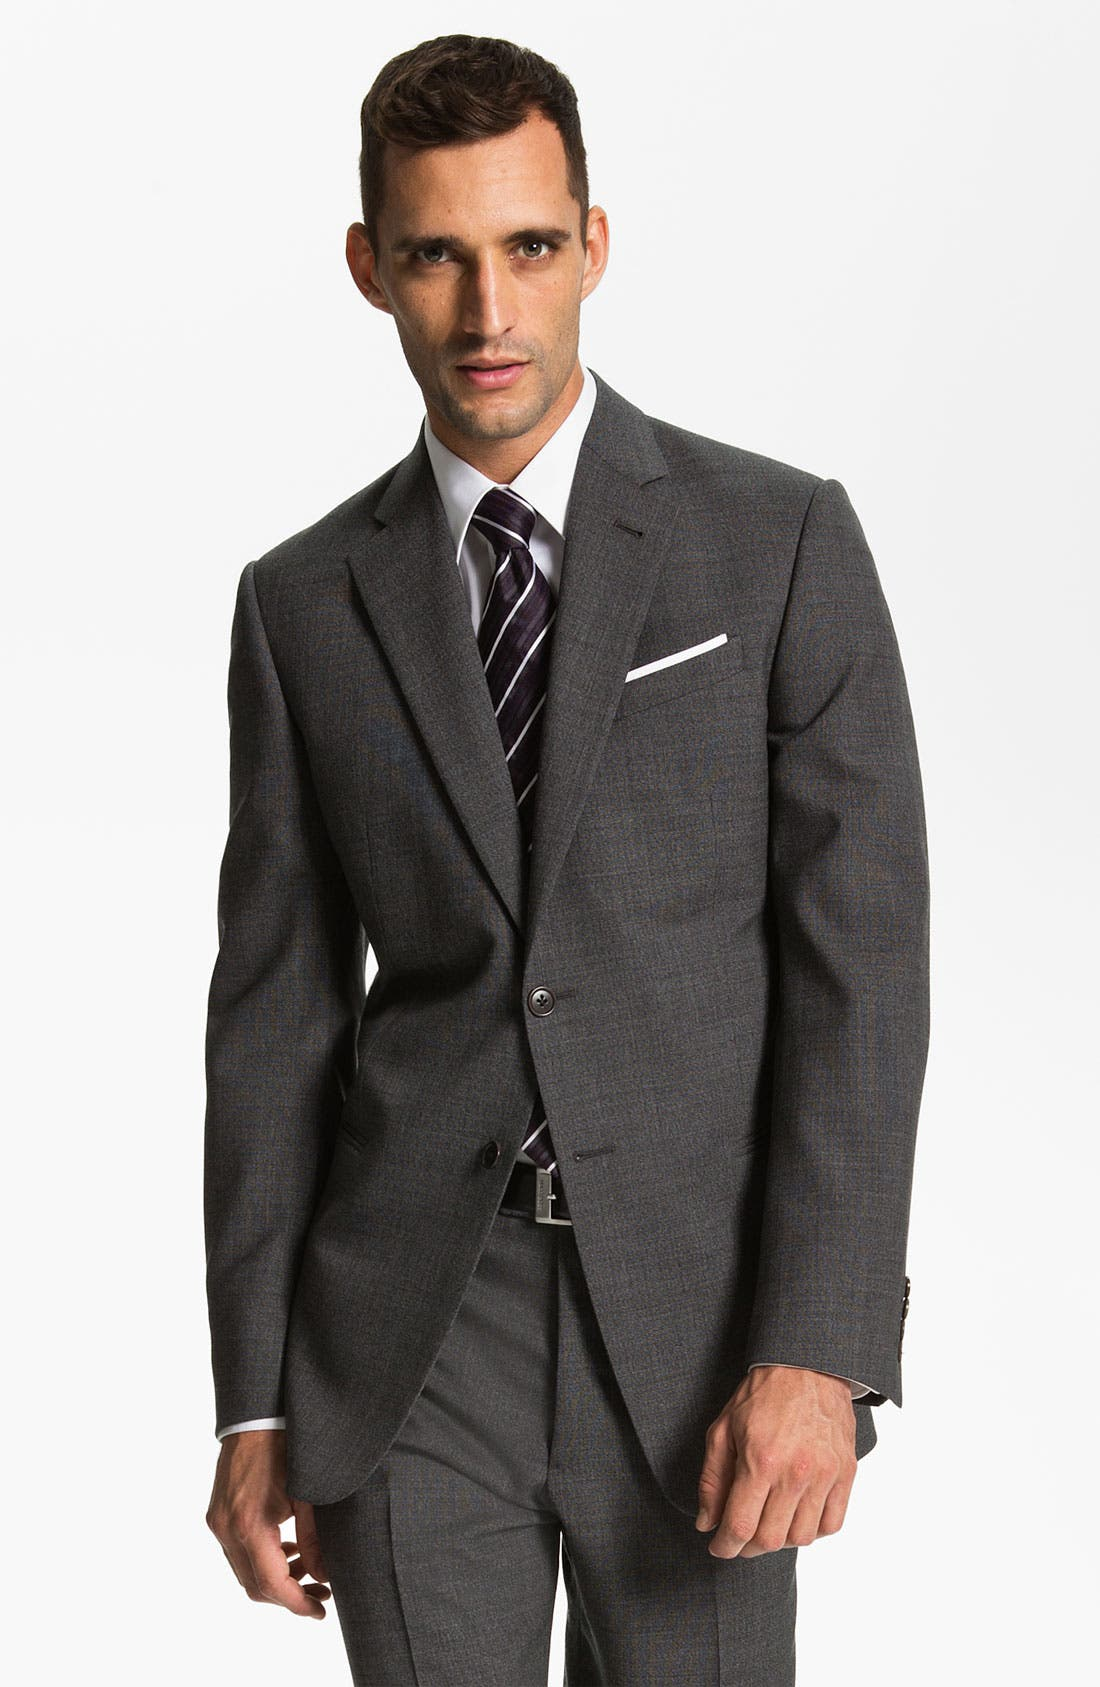 Alternate Image 1 Selected - Armani Collezioni 'Giorgio' Trim Fit Suit